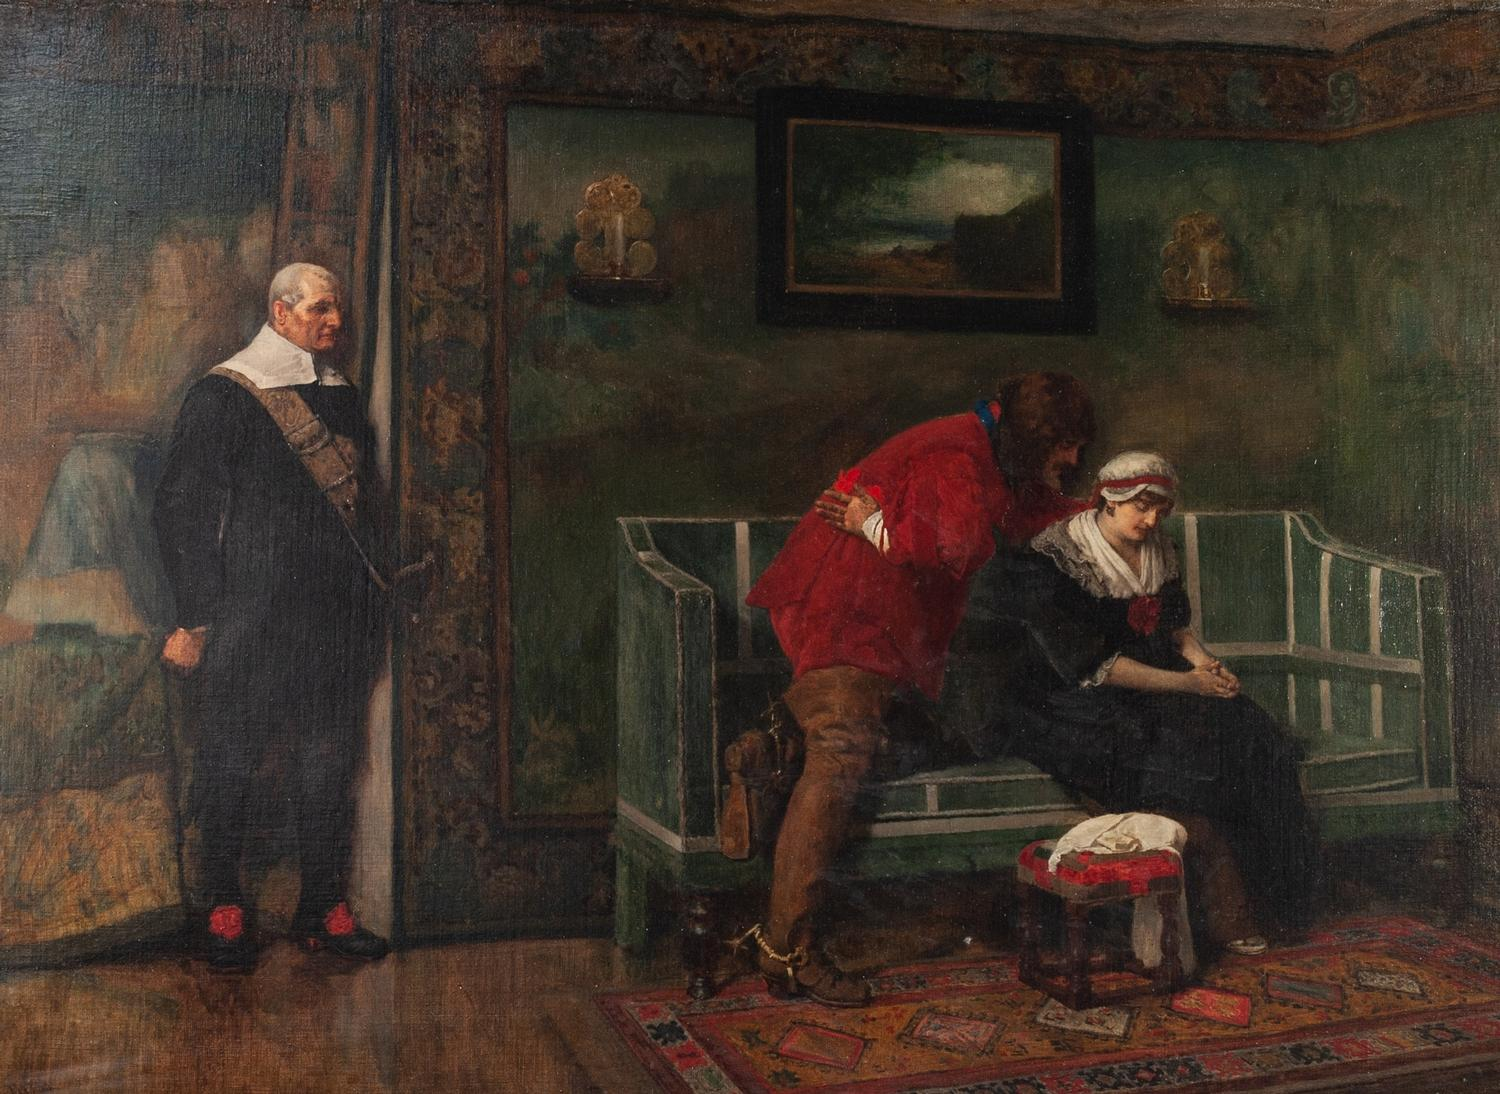 Lot 245 - JAMES DRUMGOLE LINTON P.R.I., A.R.W.S (1840-1916) OIL PAINTING ON LINED CANVAS 'Major Ralph